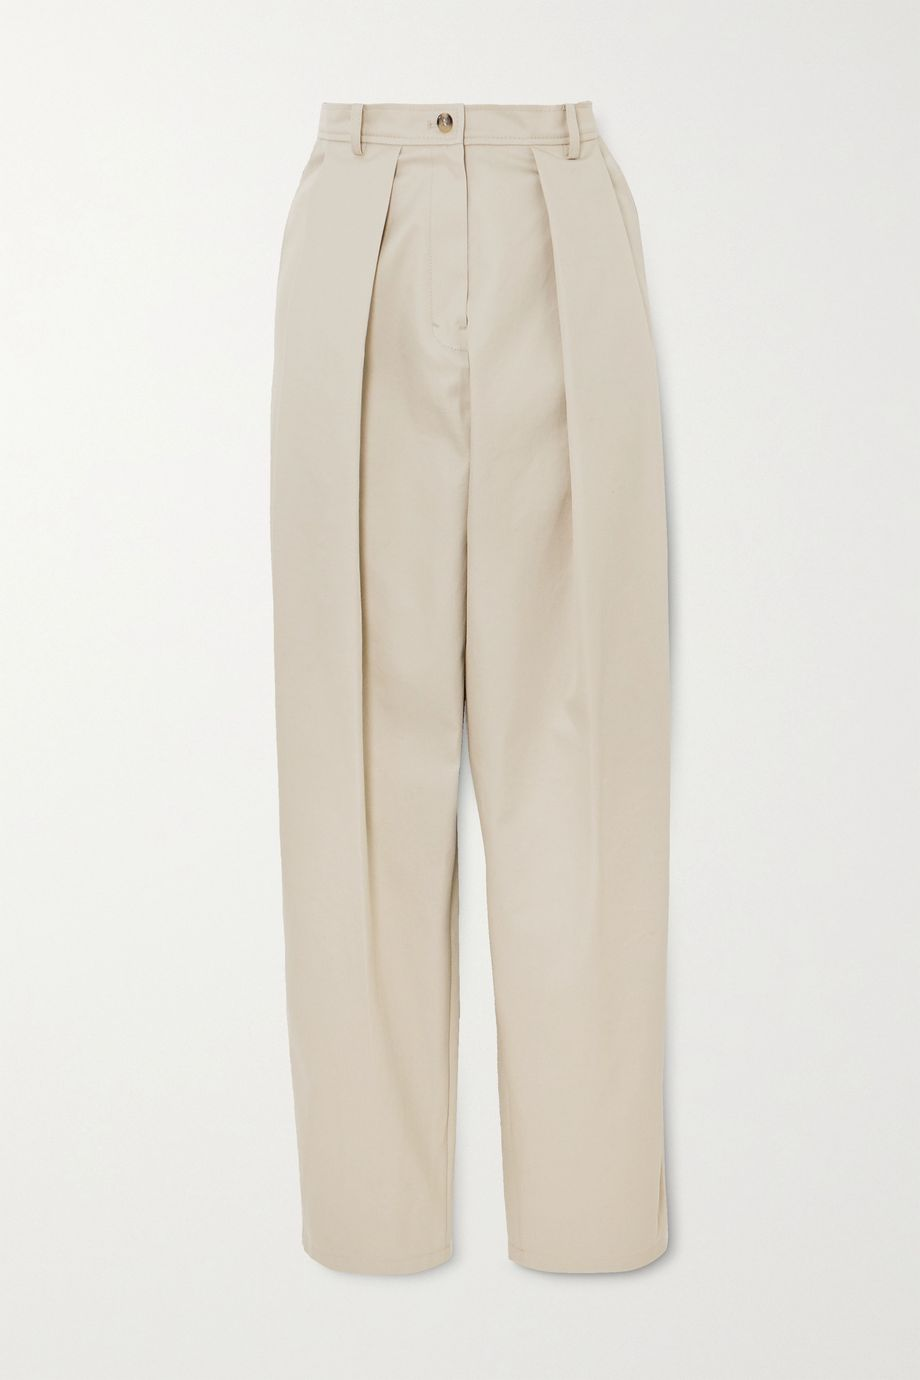 Magda Butrym Harwich pleated cotton-twill tapered pants